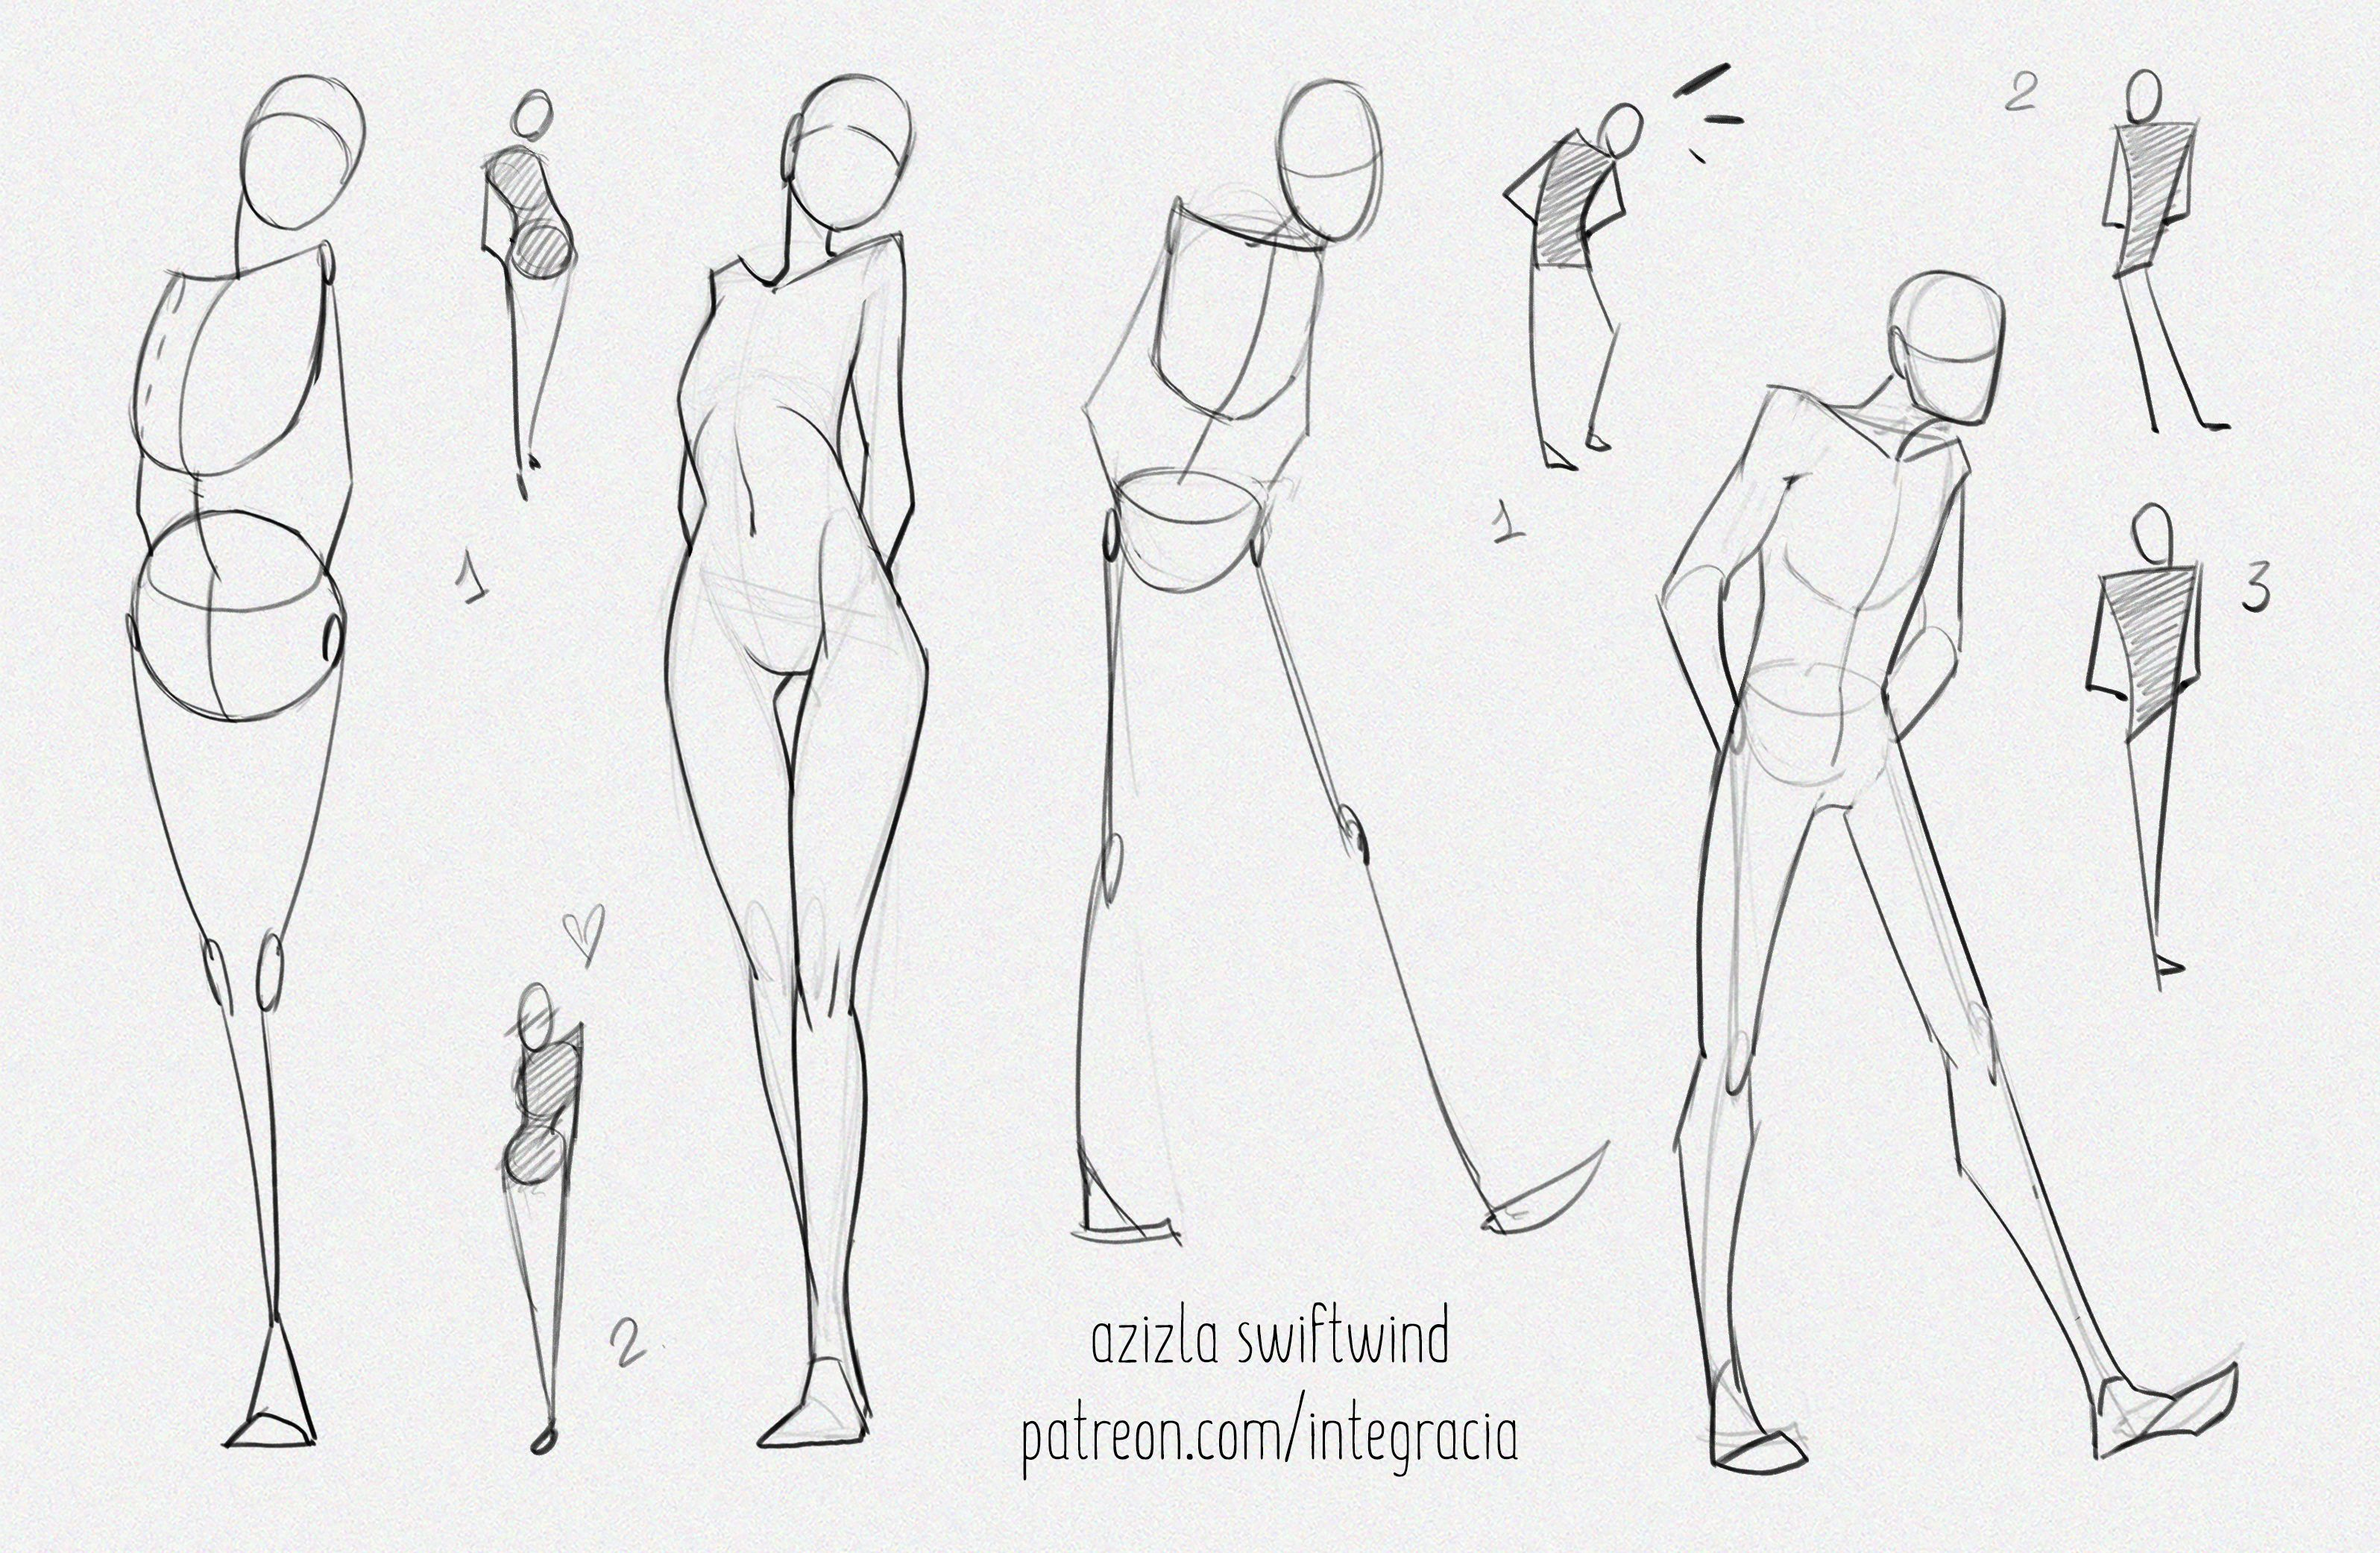 Azizla Swiftwind Is Creating Comic Arts And Resources Patreon Body Reference Drawing Drawing Reference Poses Art Reference Photos